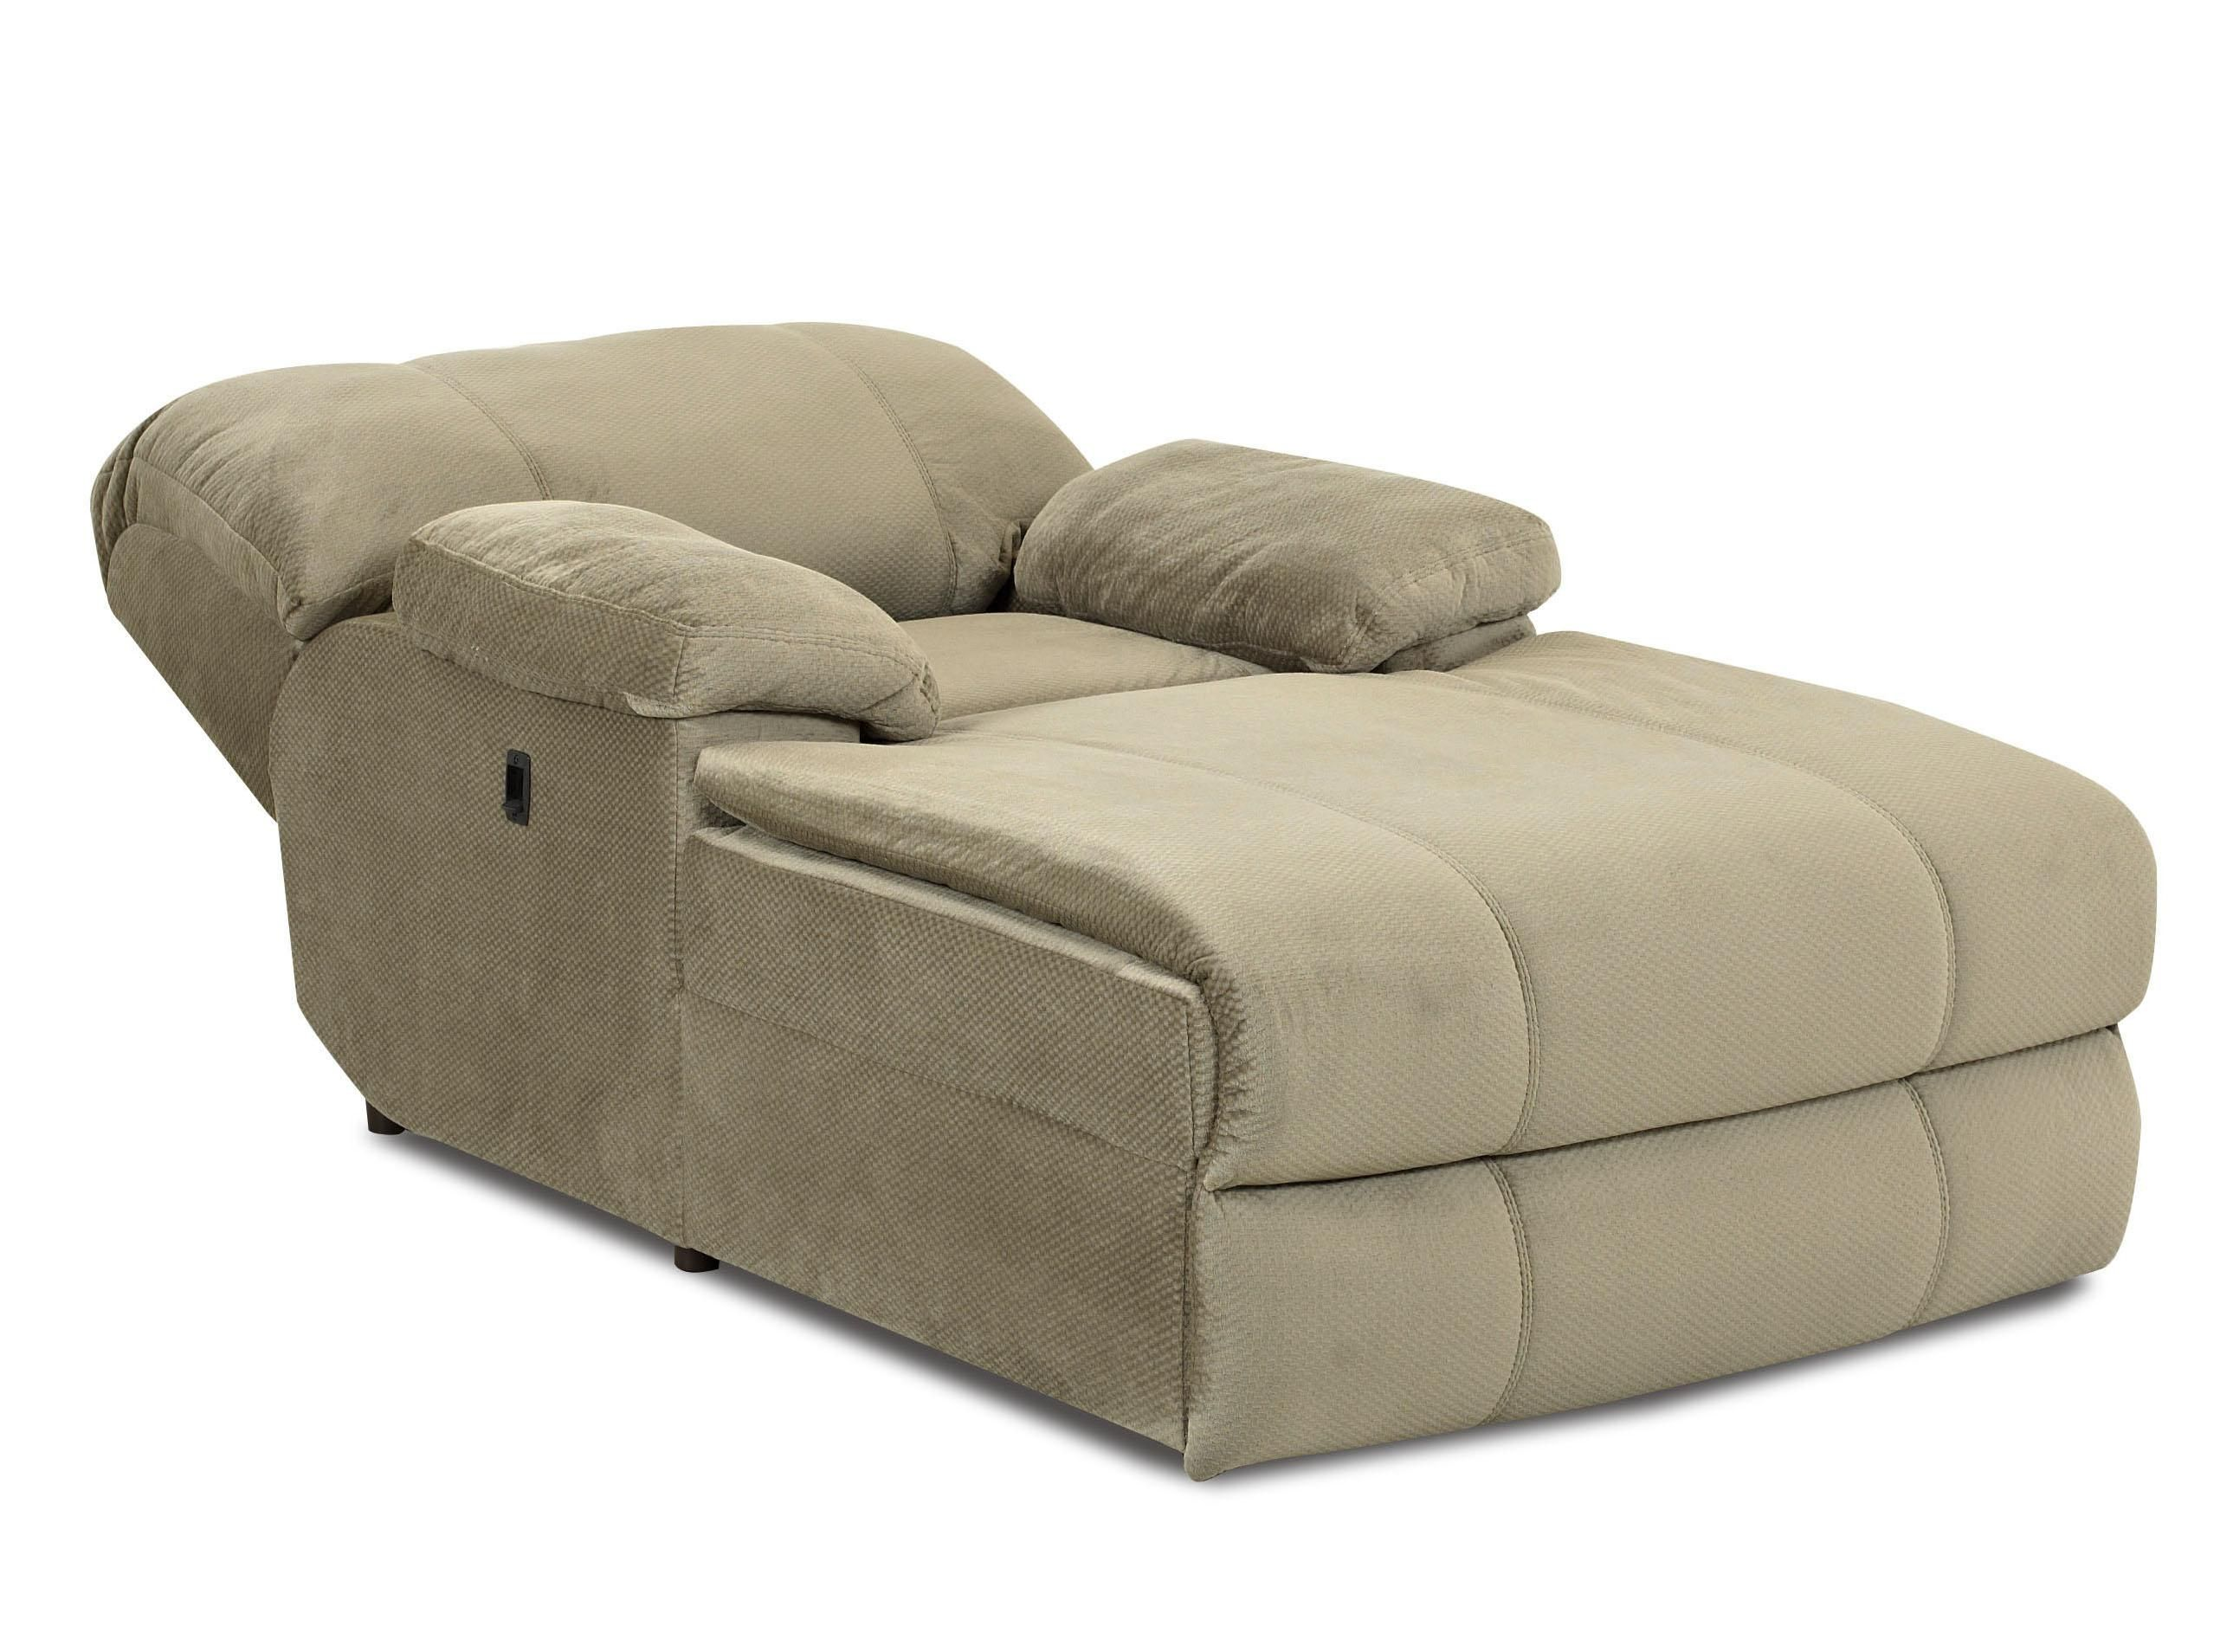 Indoor oversized chaise lounge kensington reclining for Chaise and recliner